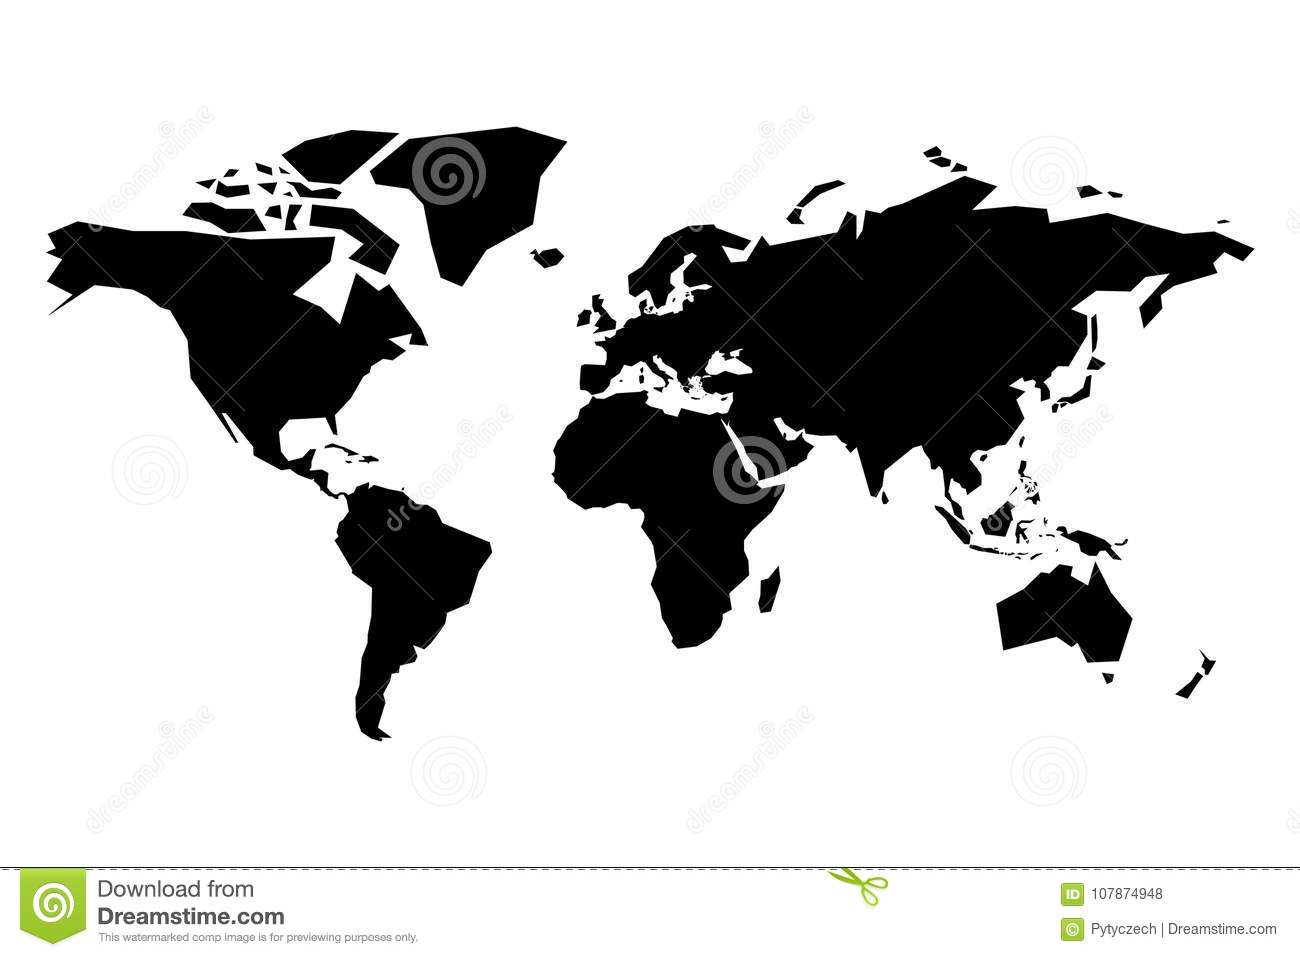 Map of World vector silhouette. Simplified black map on white background